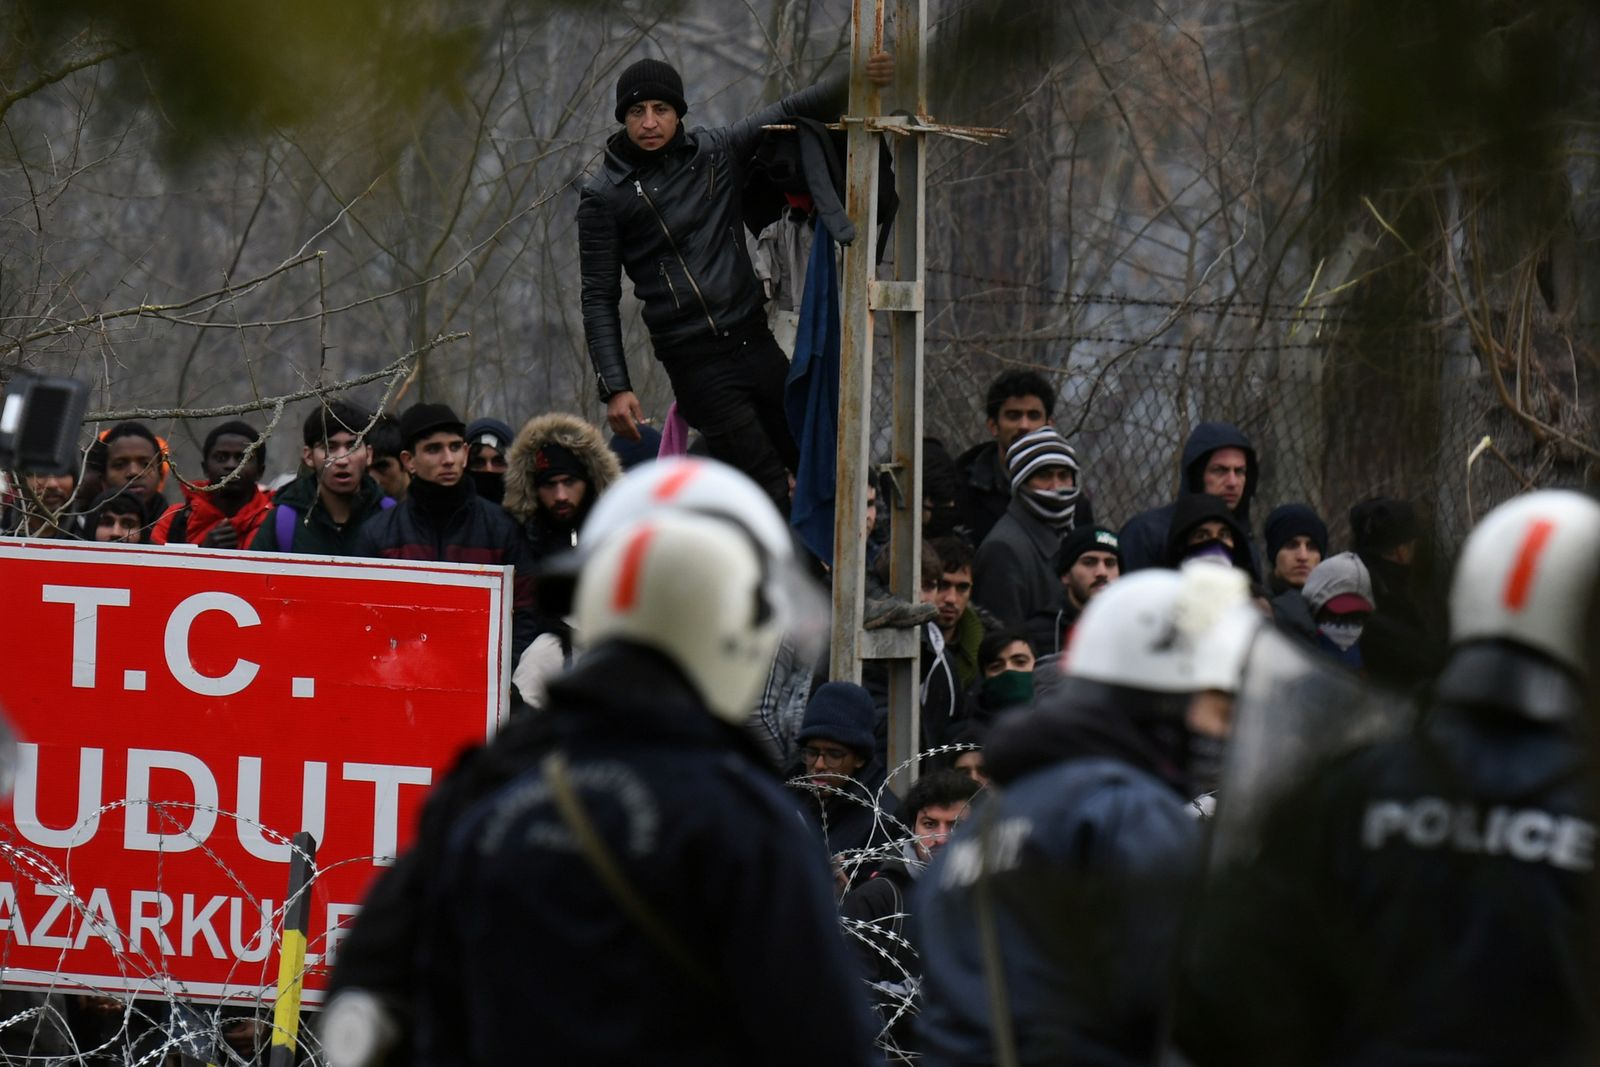 Migrants who want to cross into Greece from Turkey are gathered at the borderline as Greek riot police stand guard at the closed Kastanies border crossing with Turkey's Pazarkule, in the region of Evros